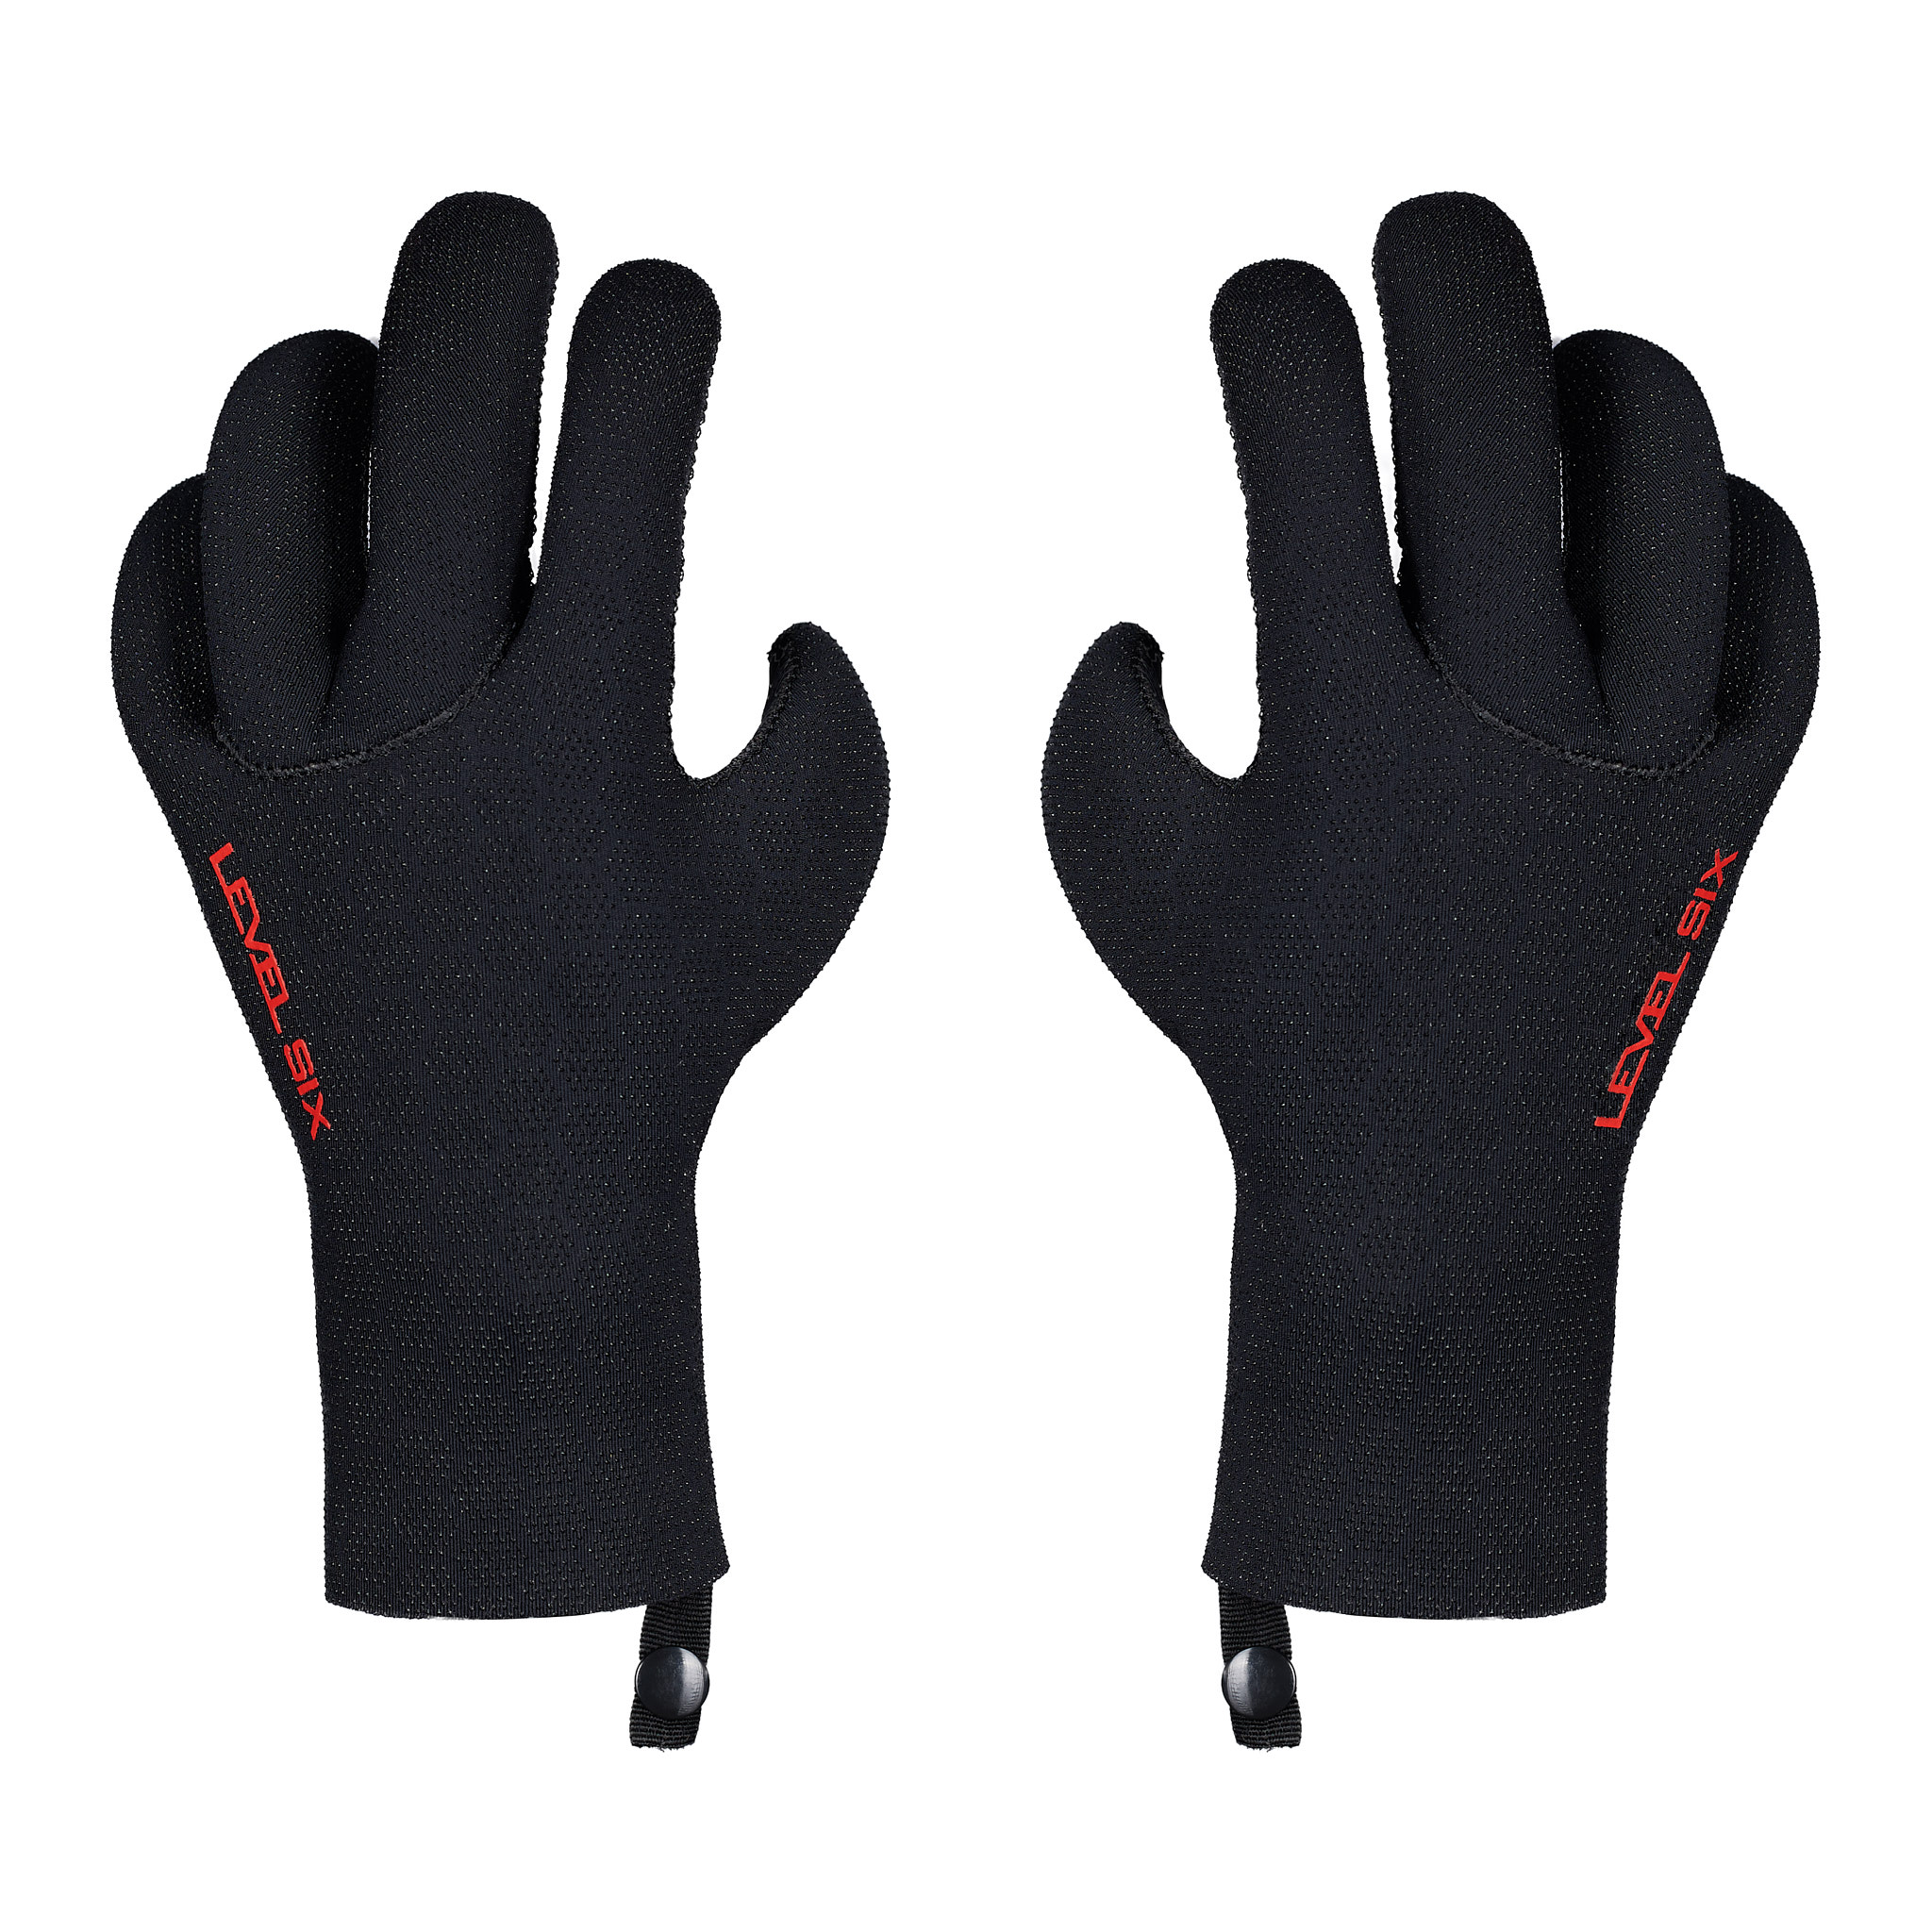 Handwear: Proton Glove by Level Six - Image 3876